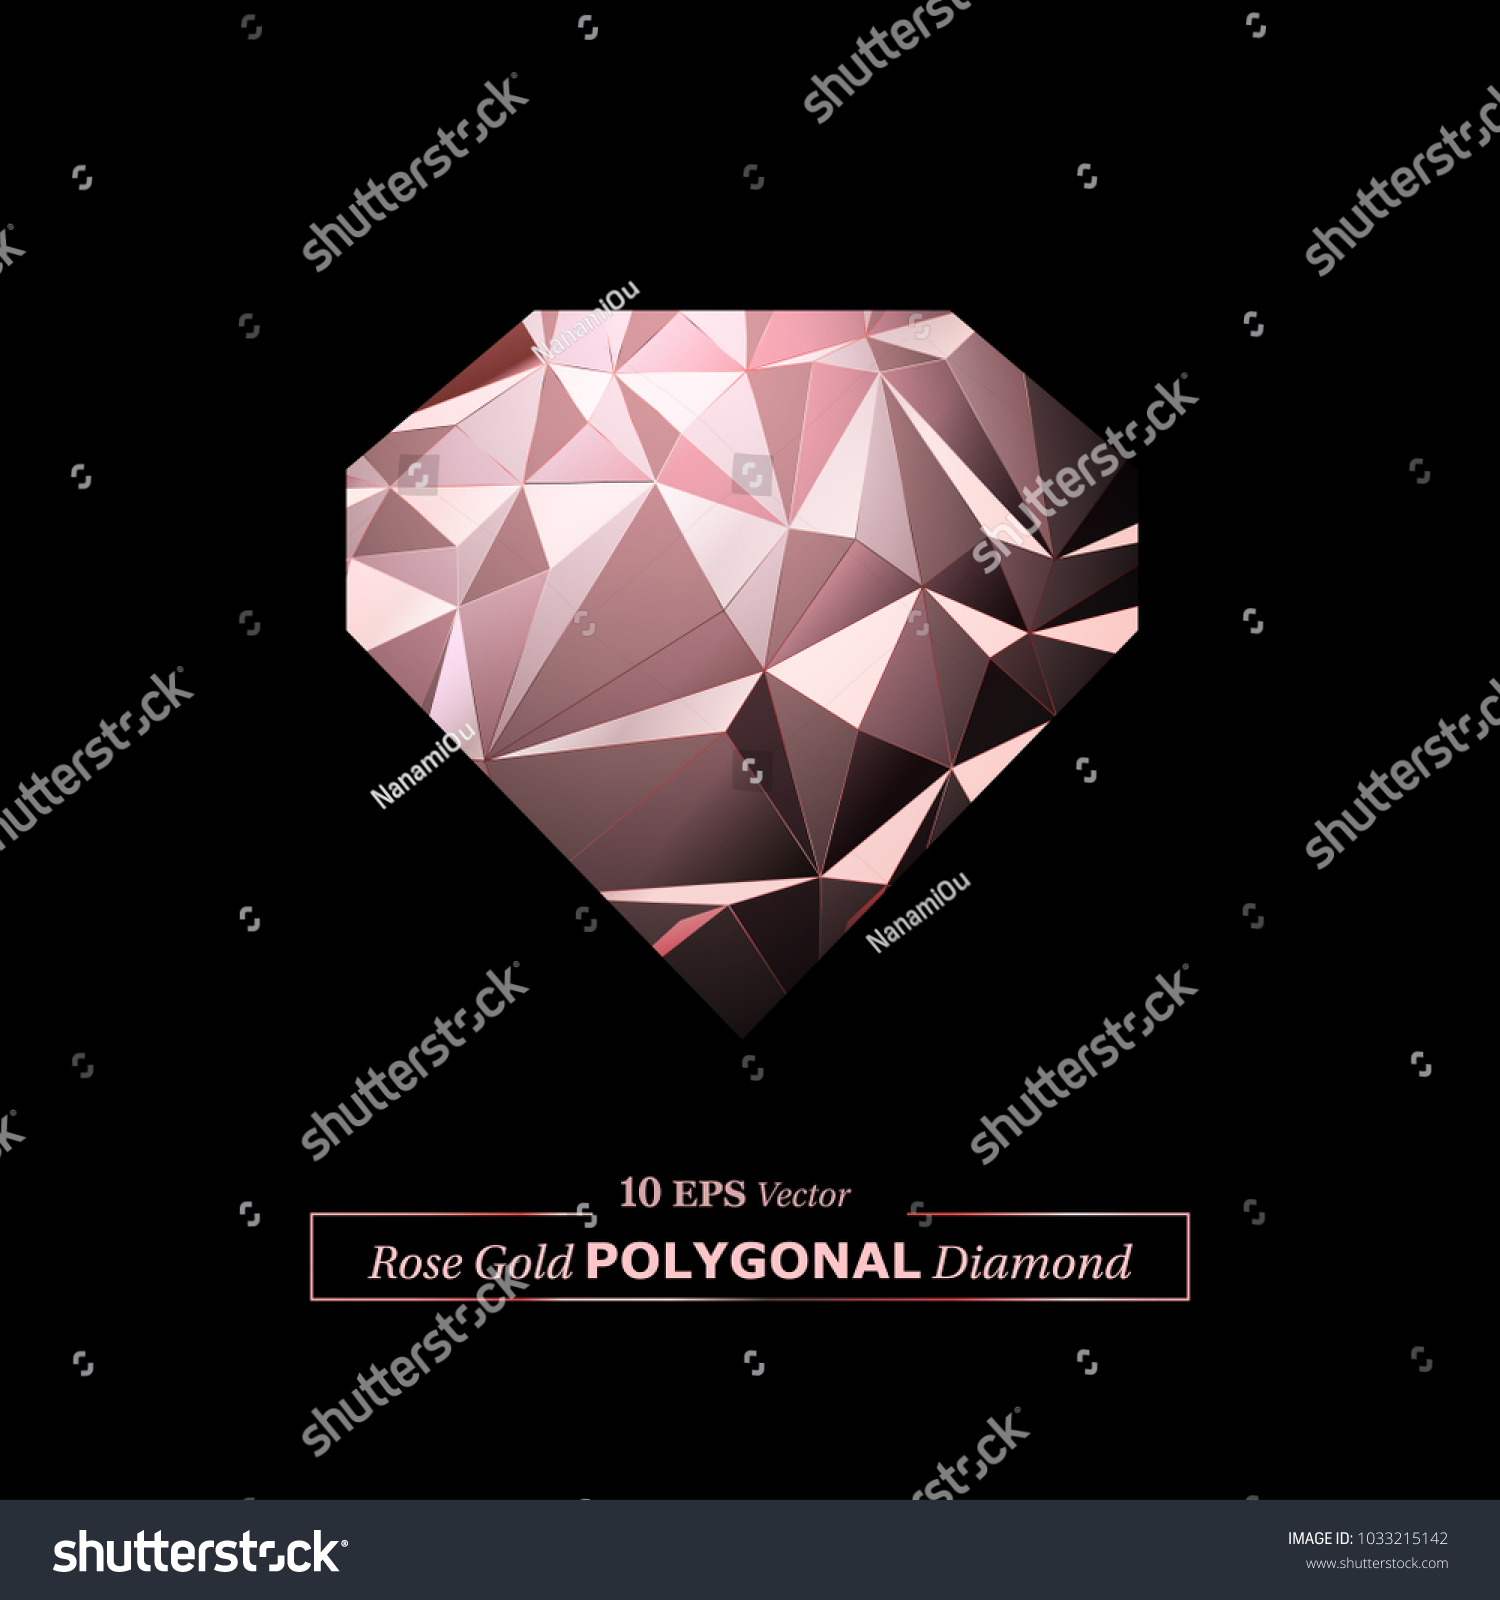 prismatic low image detail big png poly polygon clipart diamond